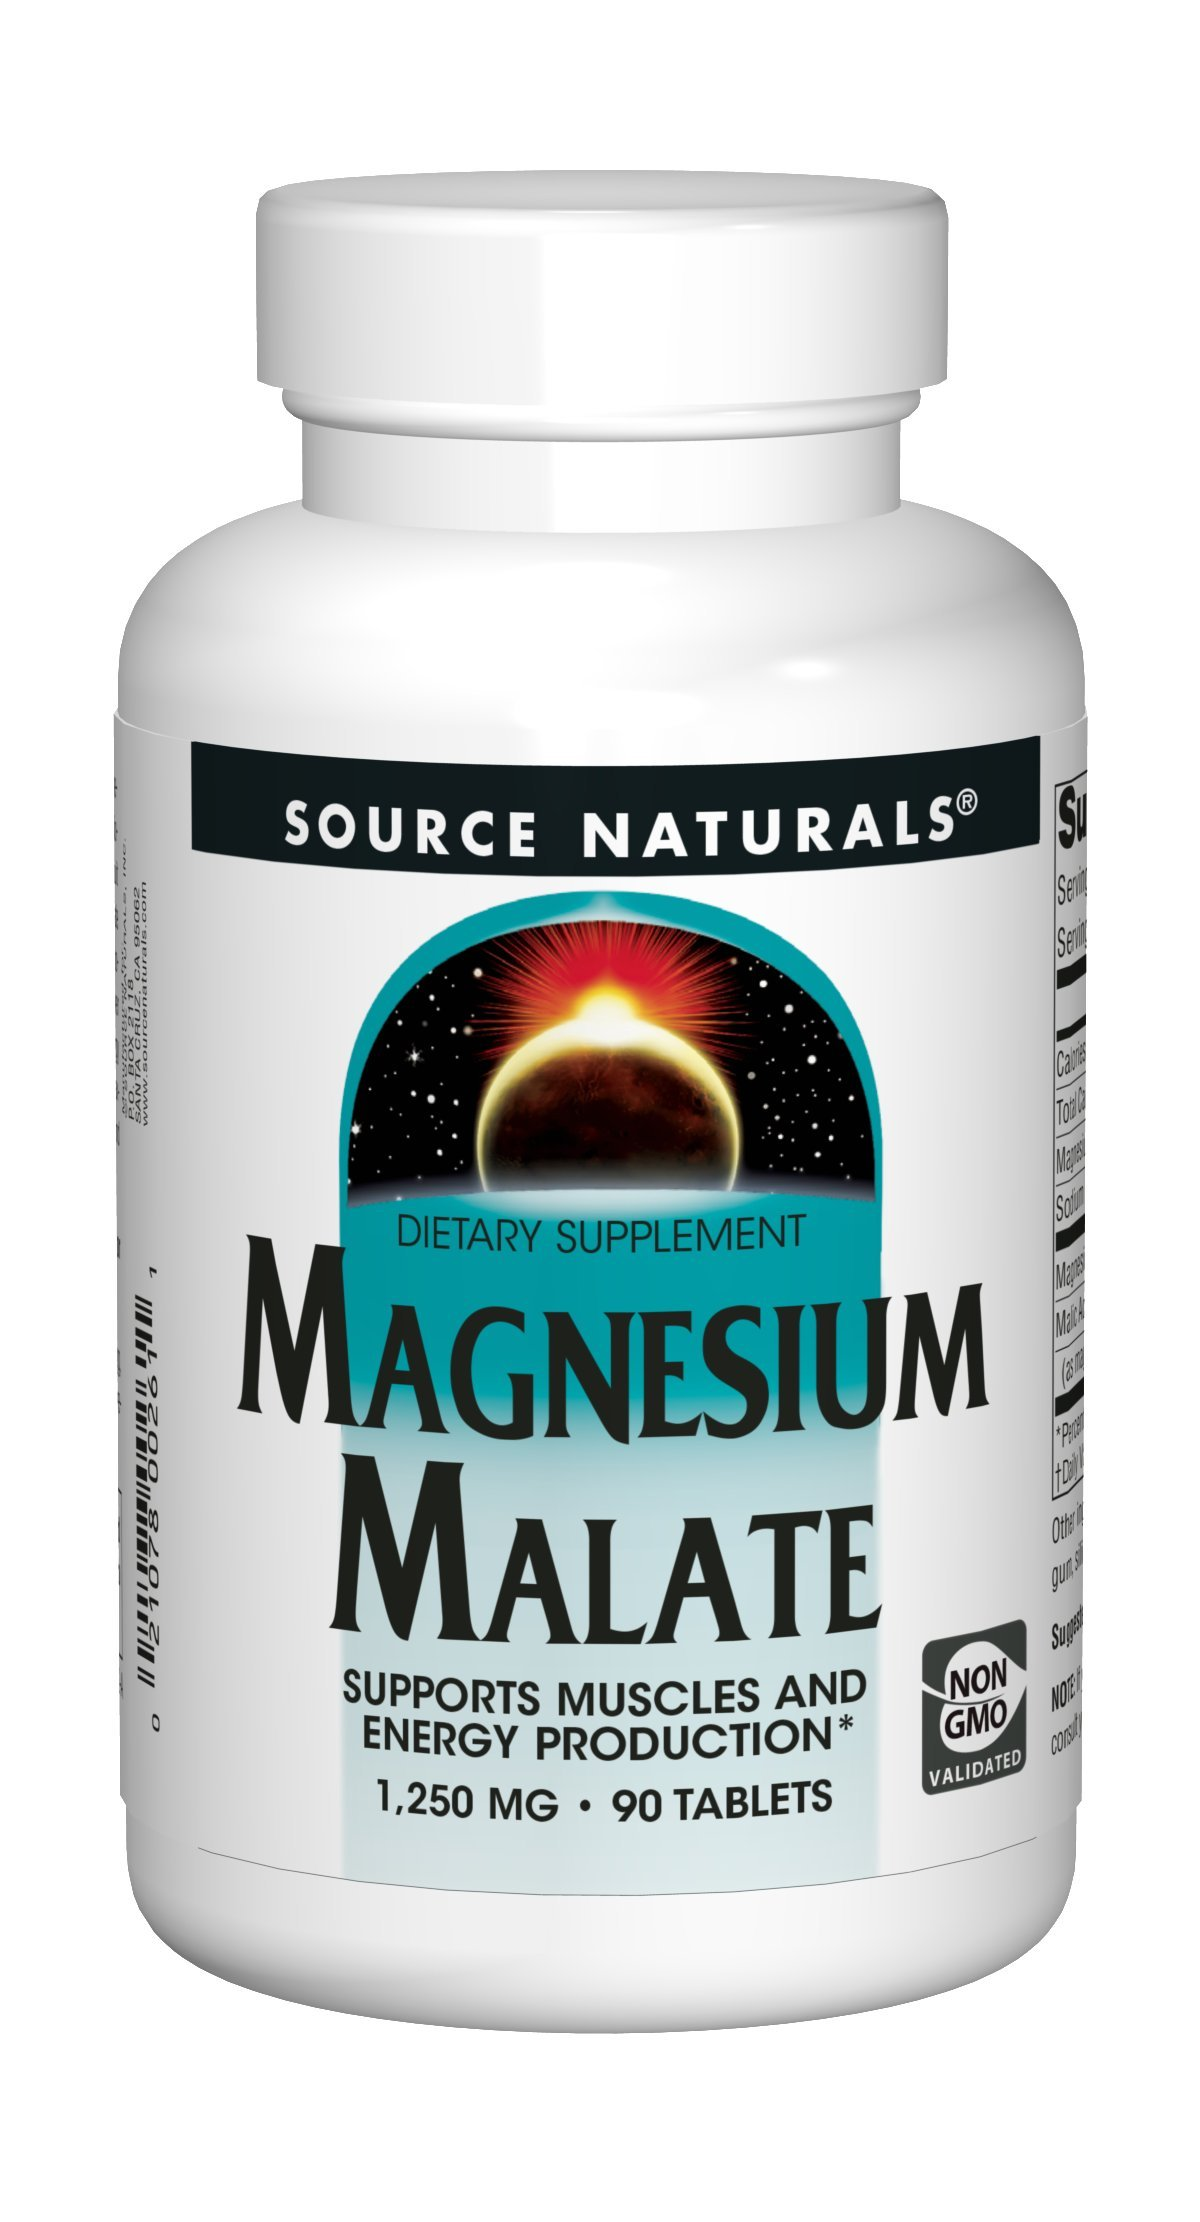 Source Naturals Magnesium Malate 1250mg Supplement Supports Muscle Function, Health and Energy Production - Essential Magnesium Malic Acid Supplement - 90 Tablets by Source Naturals (Image #1)